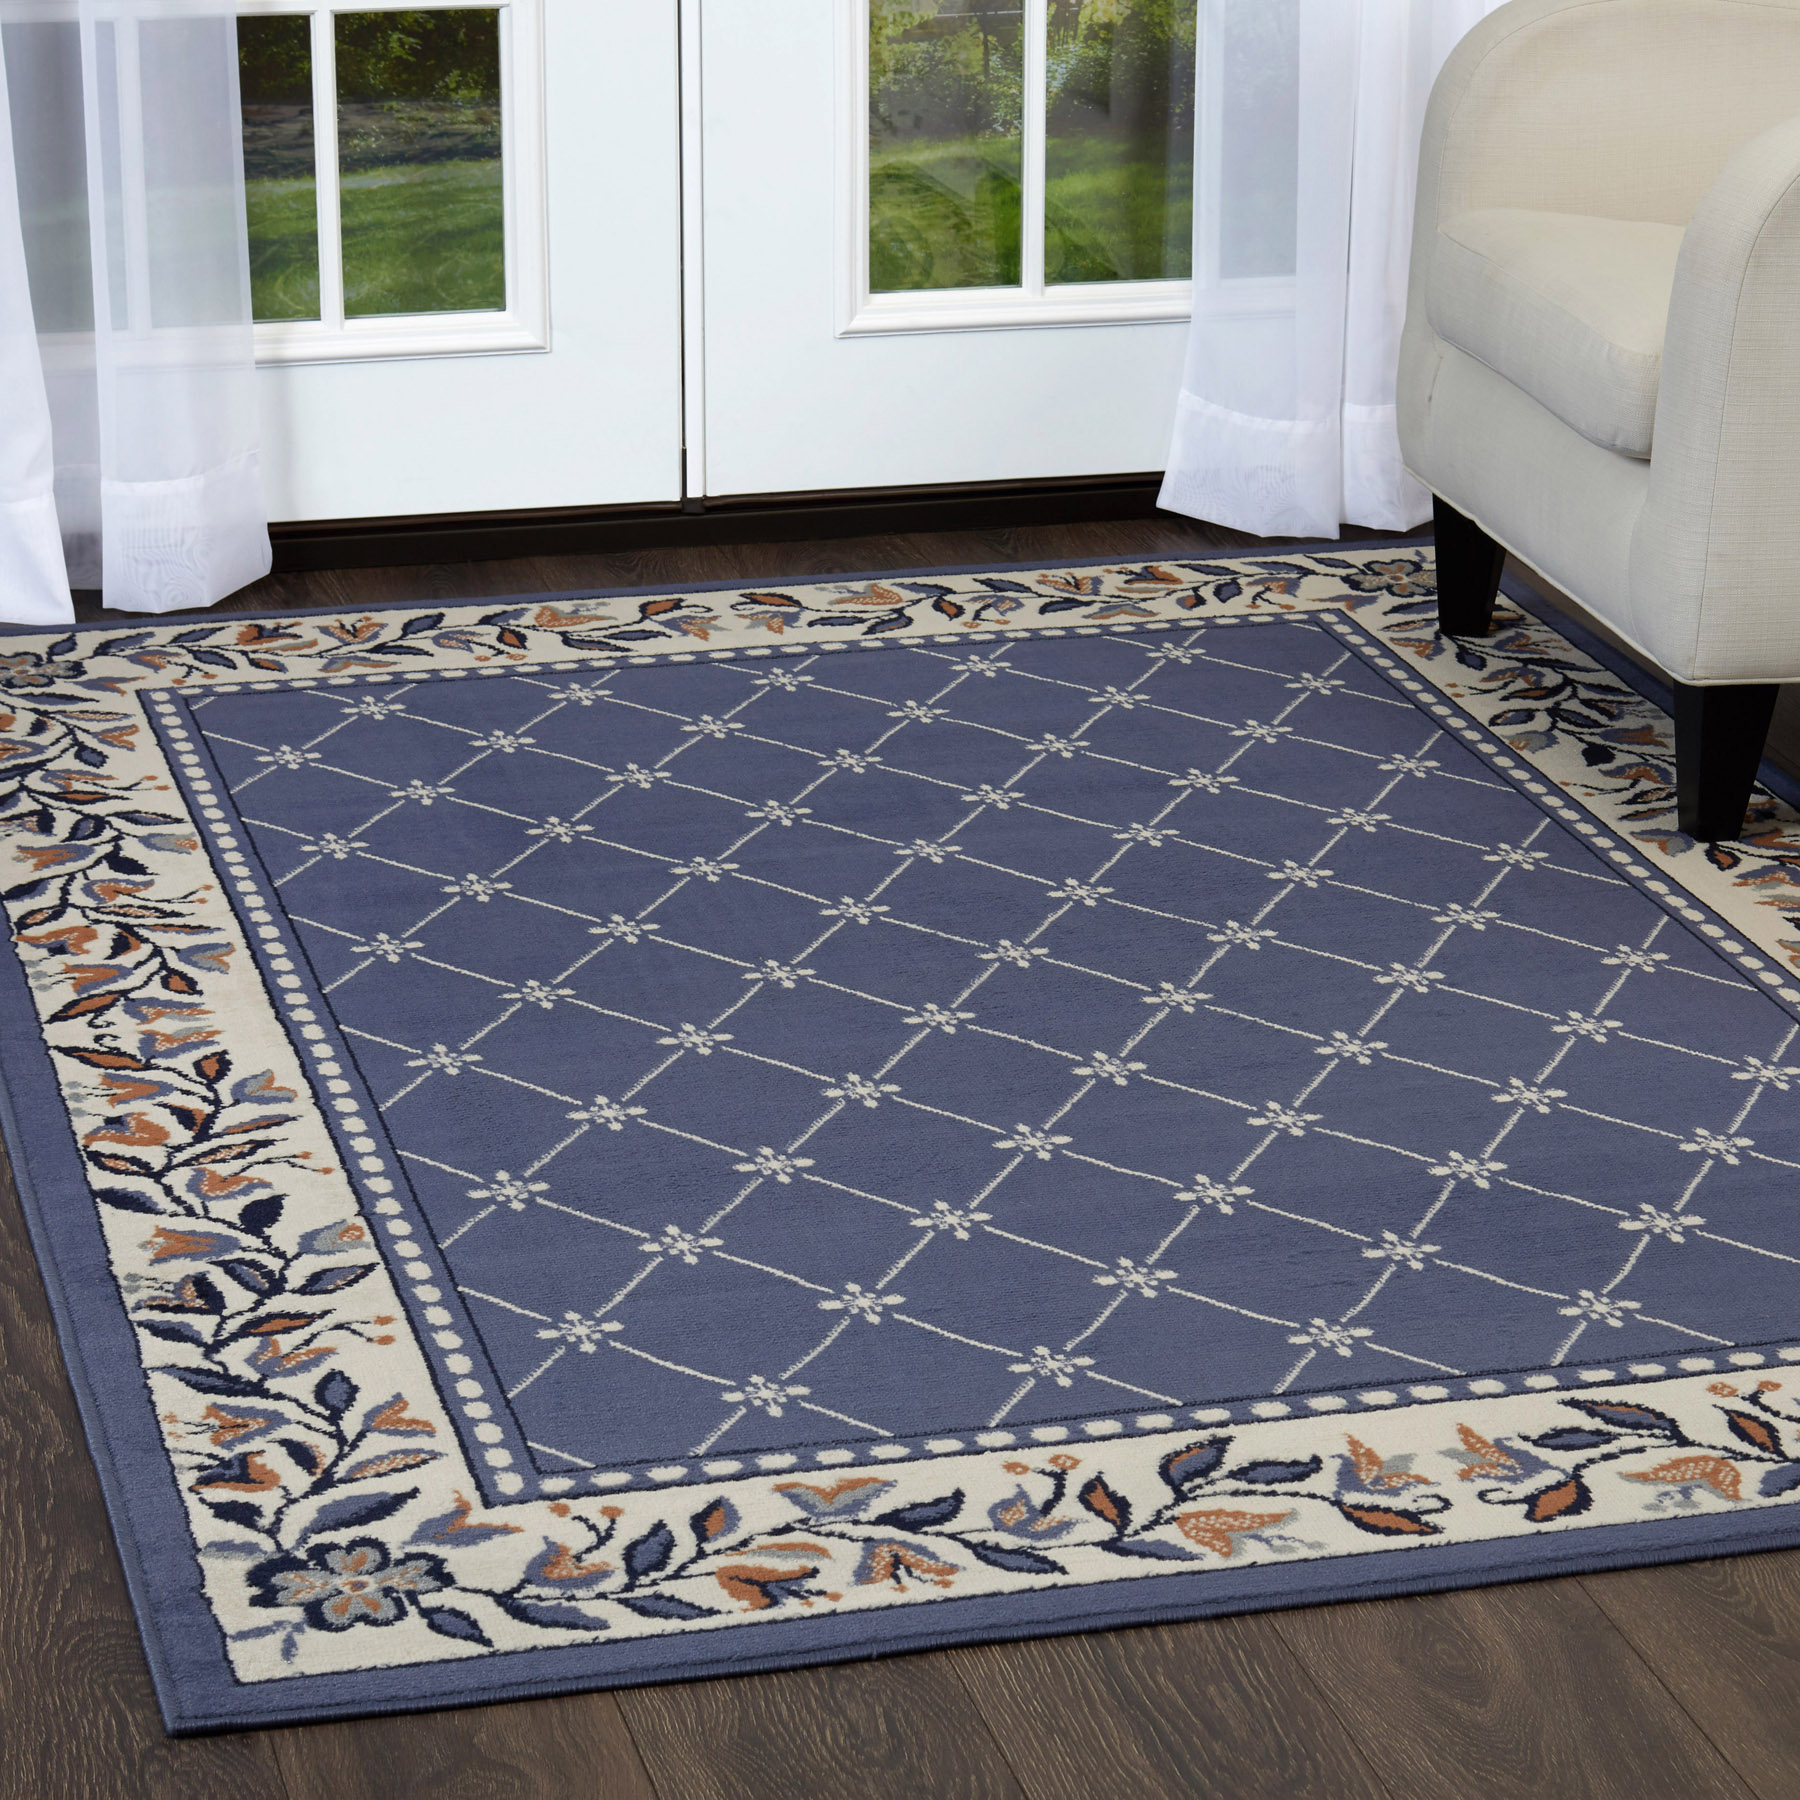 Details About Oriental Blue Area Rug Runner 2 X 8 Persien Carpet 15 Actual 1 10 X 7 3